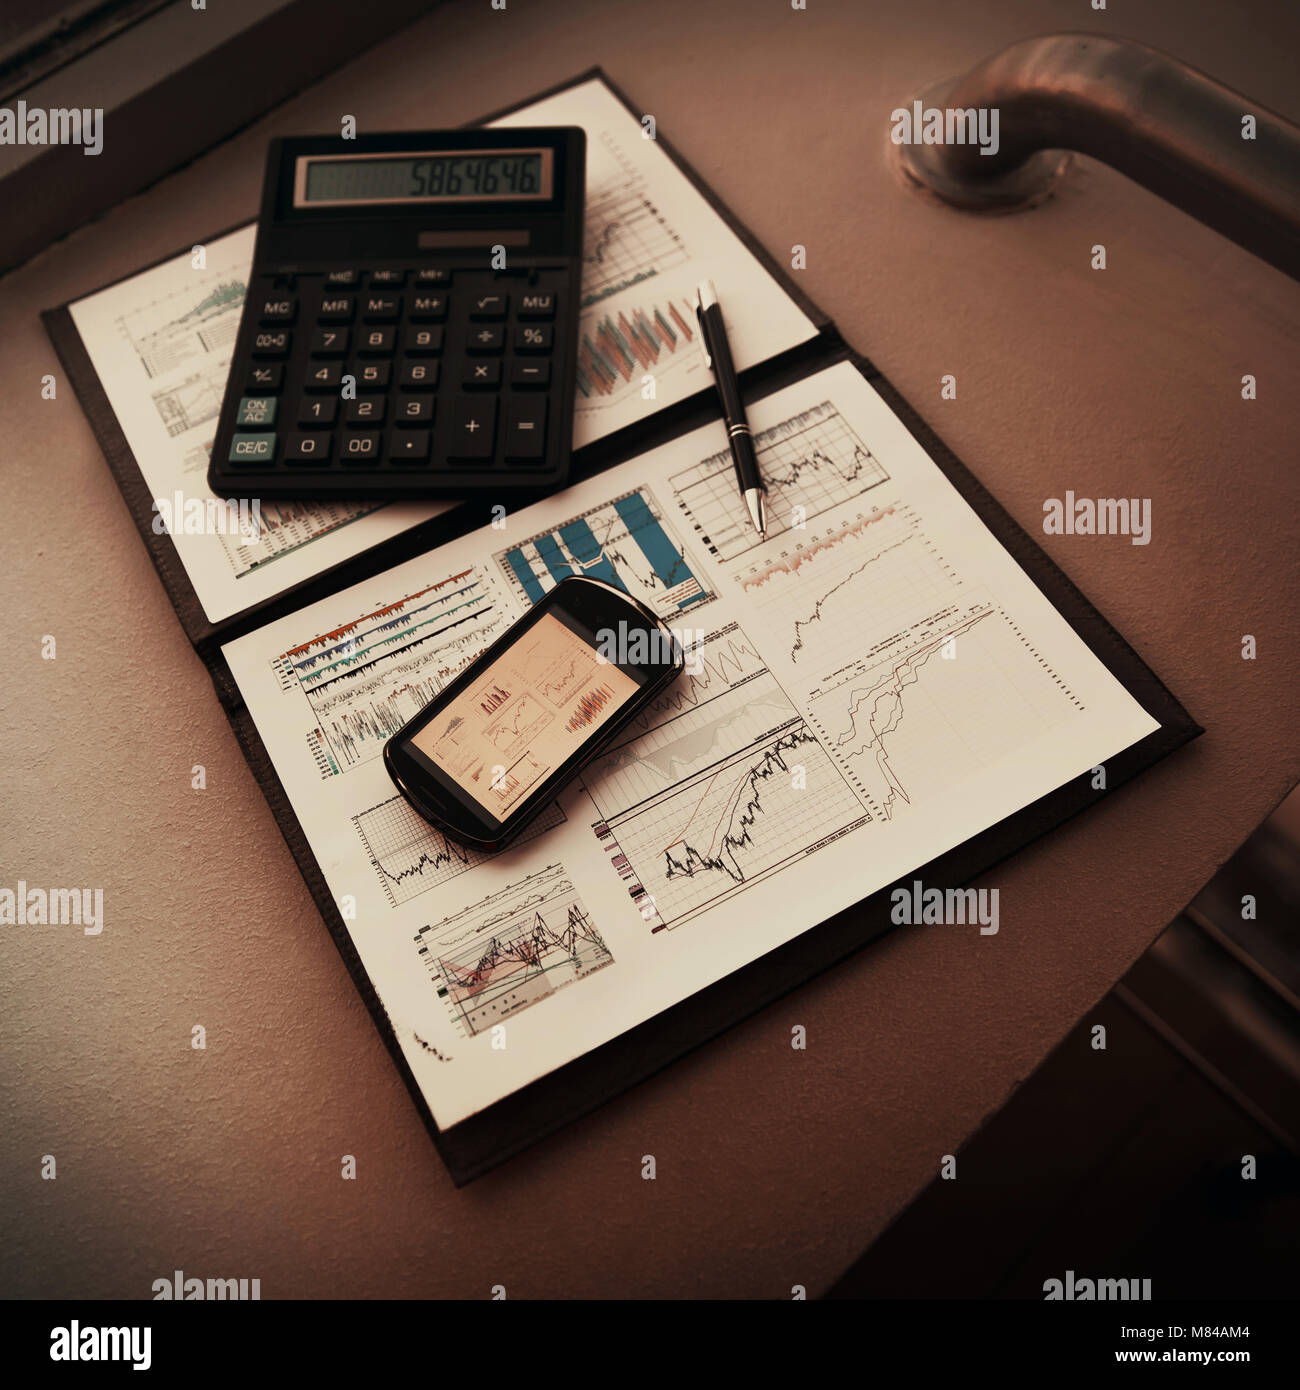 folder with the charts of financial analysis. Diagrams in the phone's screen, next is calculator and pen - Stock Image